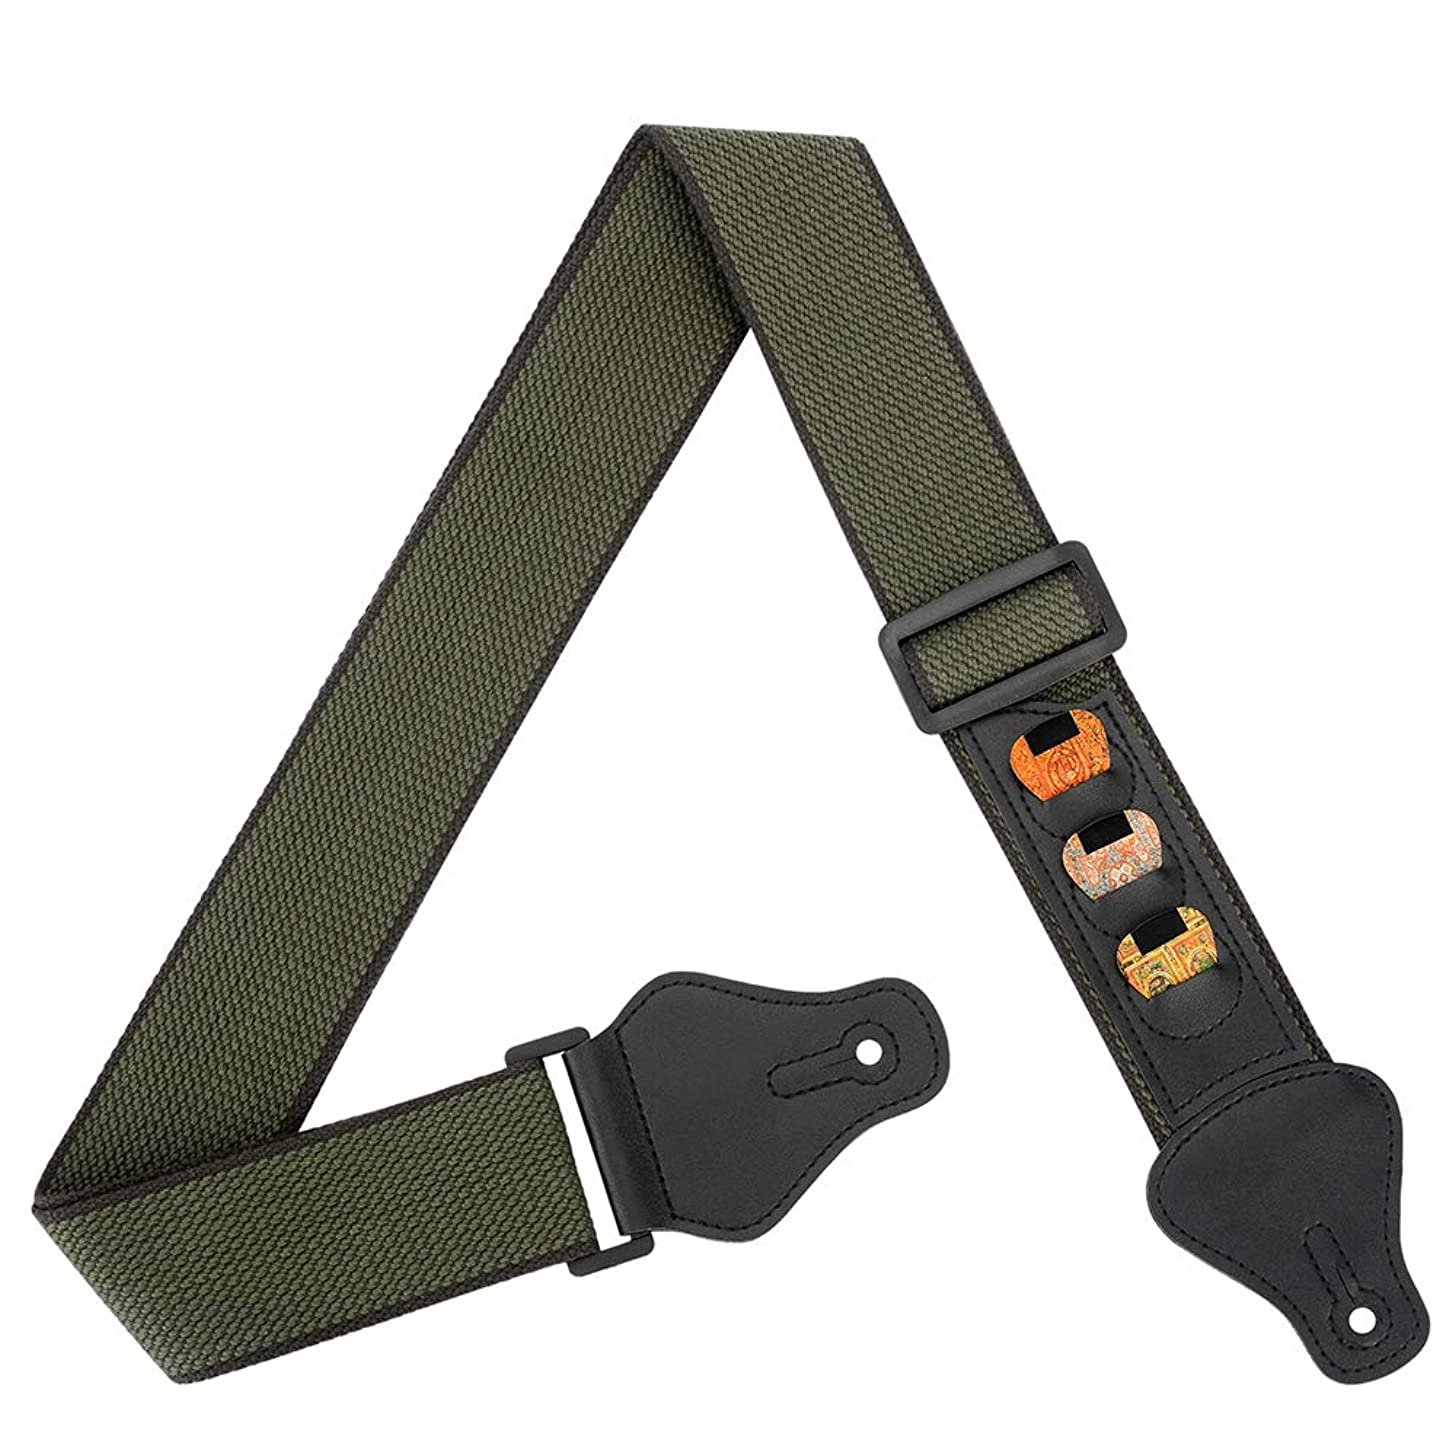 BestSounds Soft Guitar Strap 100% Cotton With 3 Pick Holders For Bass Electric & Acoustic Guitars (Green)